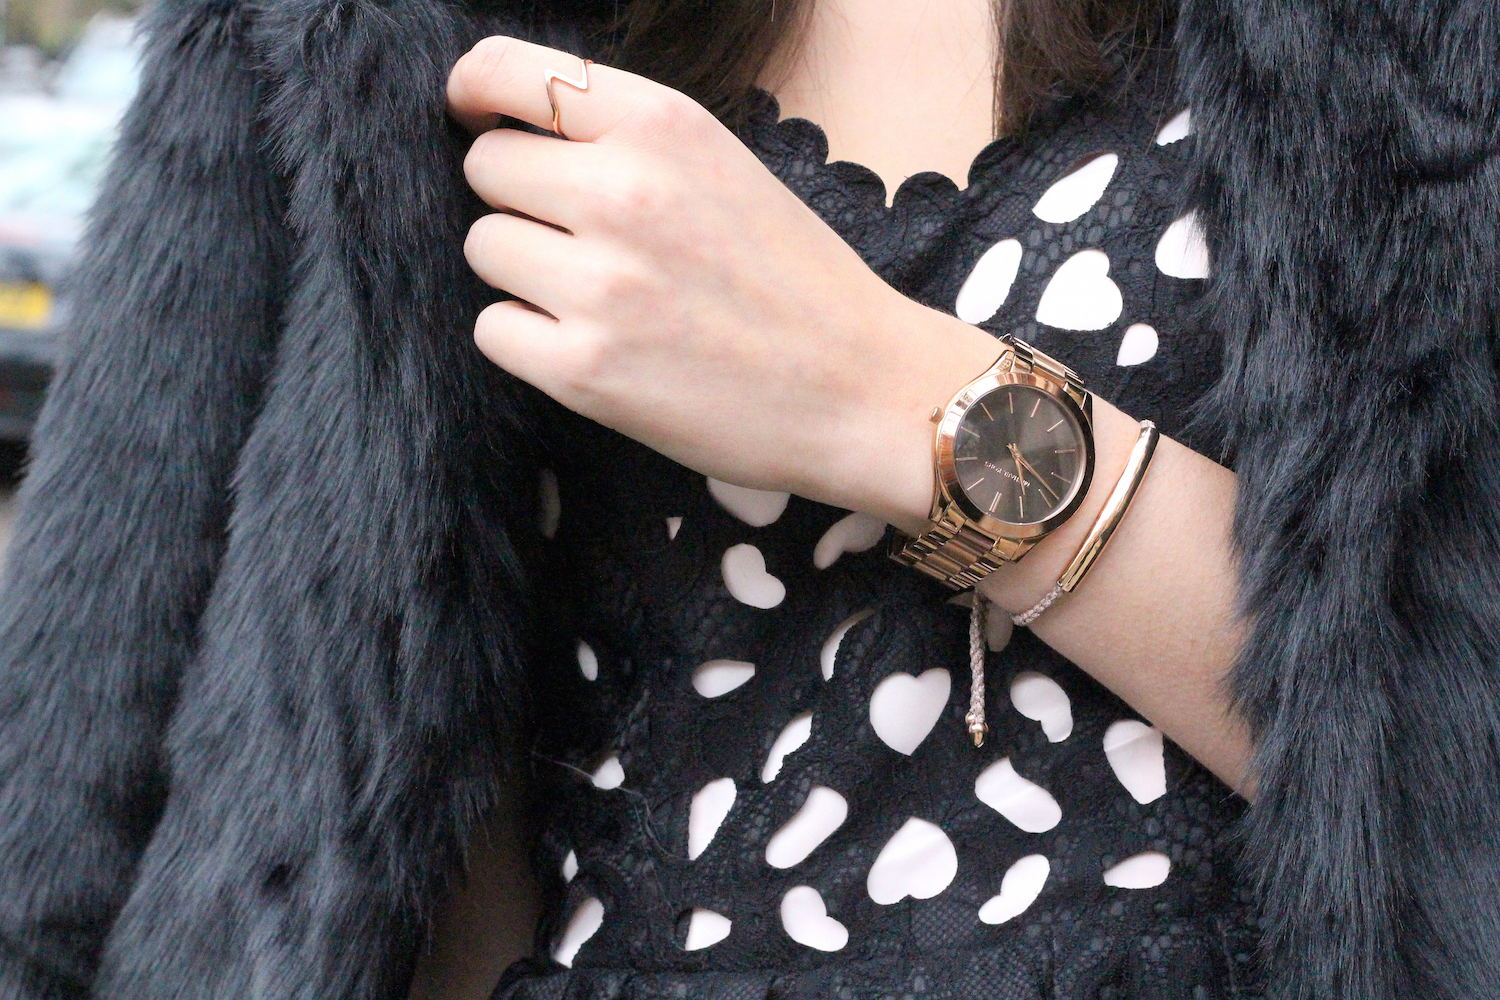 peexo fashion blogger wearing peach box jewellery